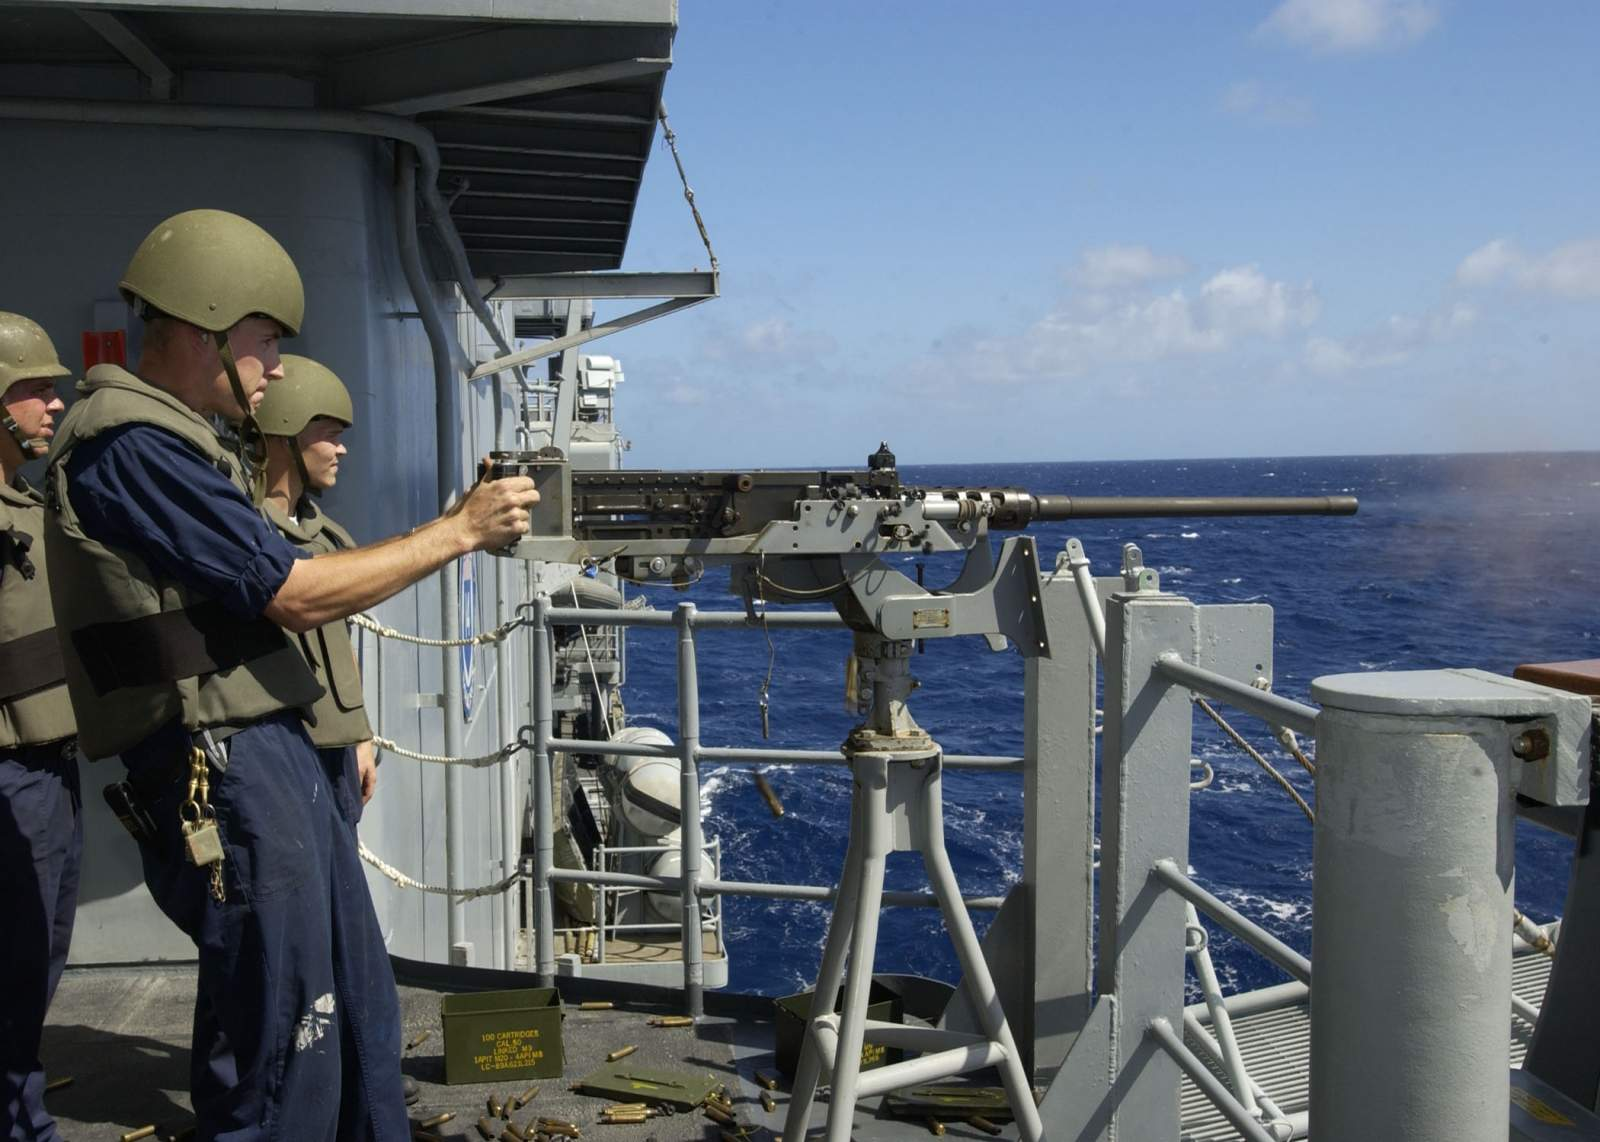 ,_fires_a_few_rounds_from_the_ship%27s_.50_cal_weapons_mount_during_a_small_arms_firing_exercise.